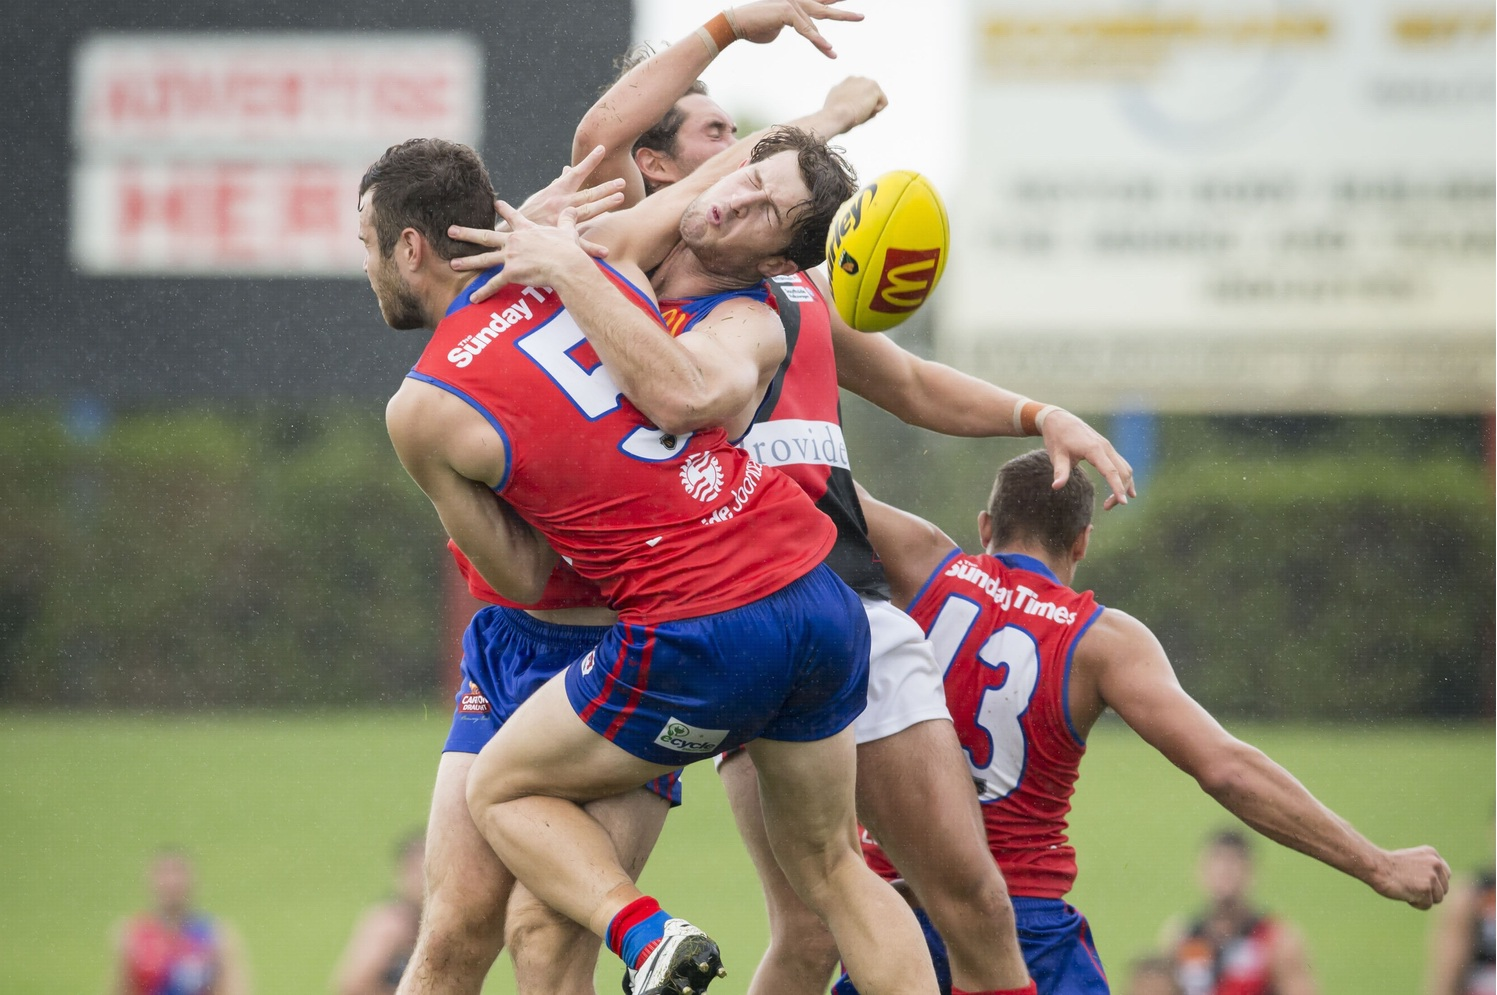 It was a bruising day for West Perth against Perth. Picture: Dan White